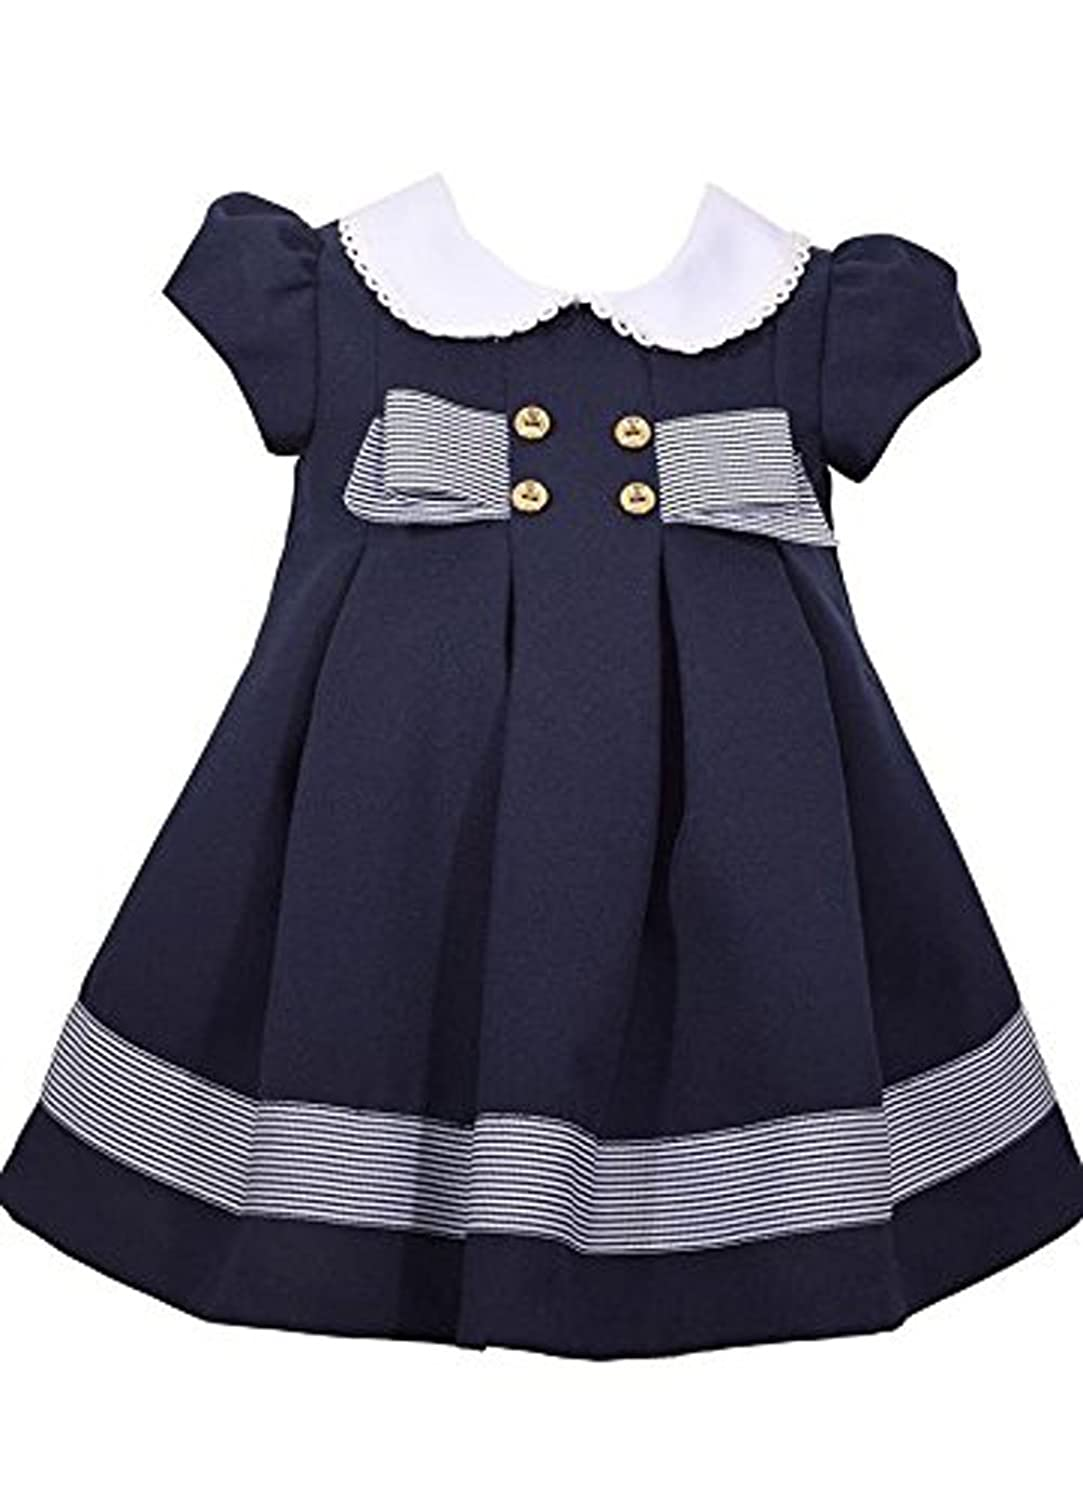 Bonnie Jean Navy Blue Nautical Theme Dress With Gold Buttons